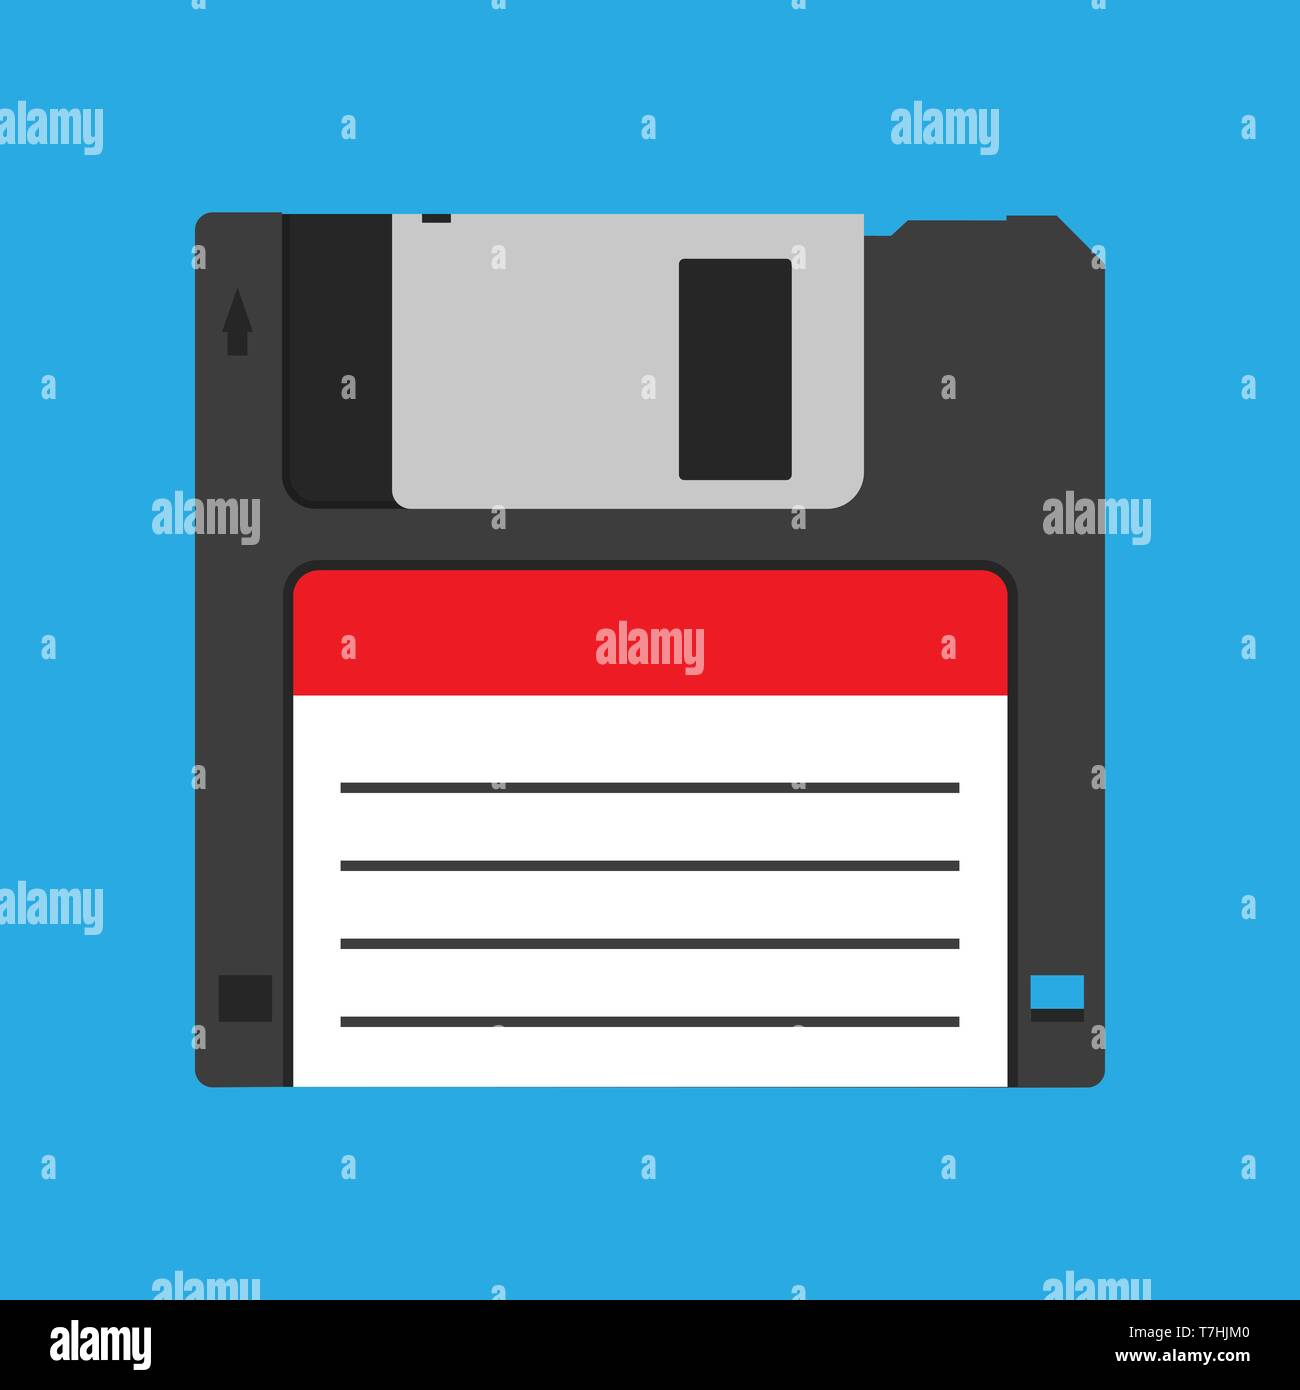 Floppy disk diskette vintage black backup device obsolete vector icon. Computer memory drive magnetic square datum - Stock Image